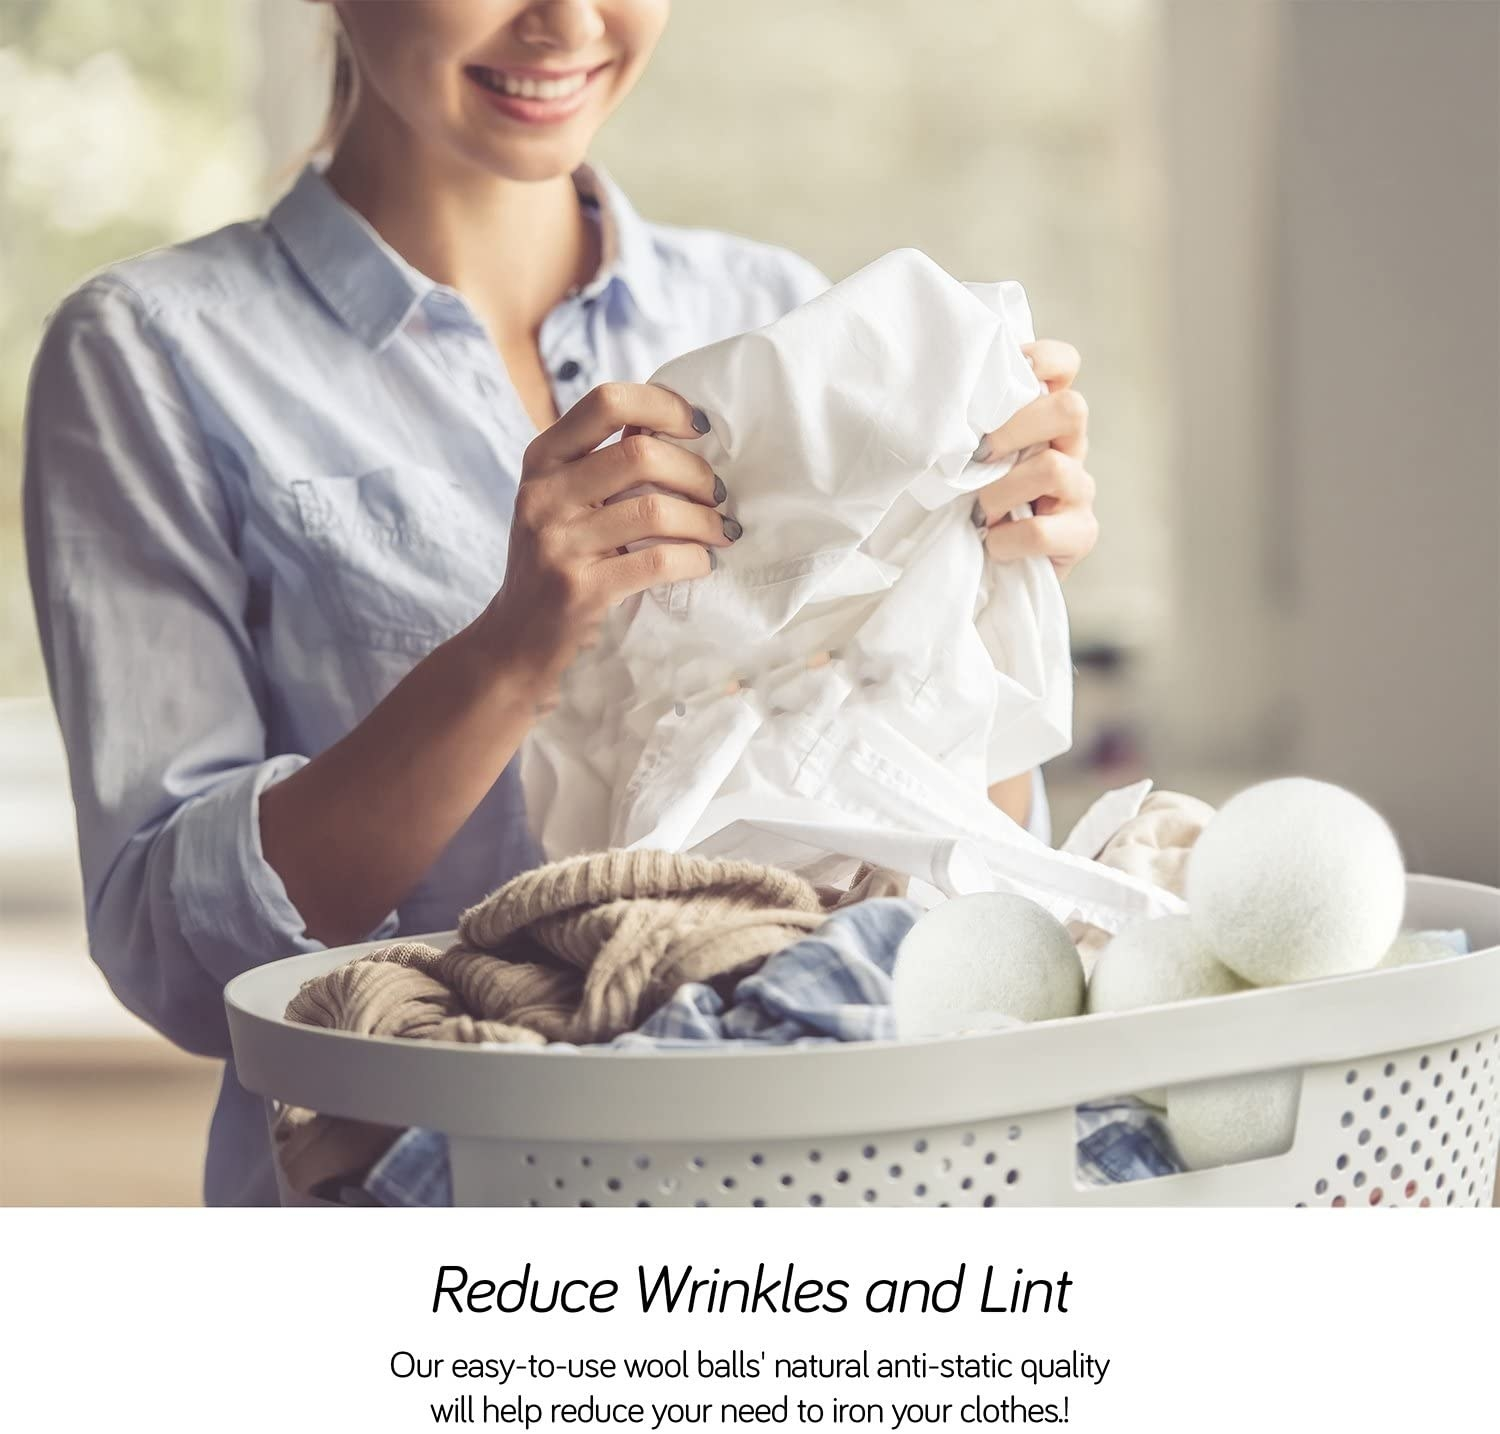 Infographic explaining that the dryer balls can help reduce wrinkles and lint